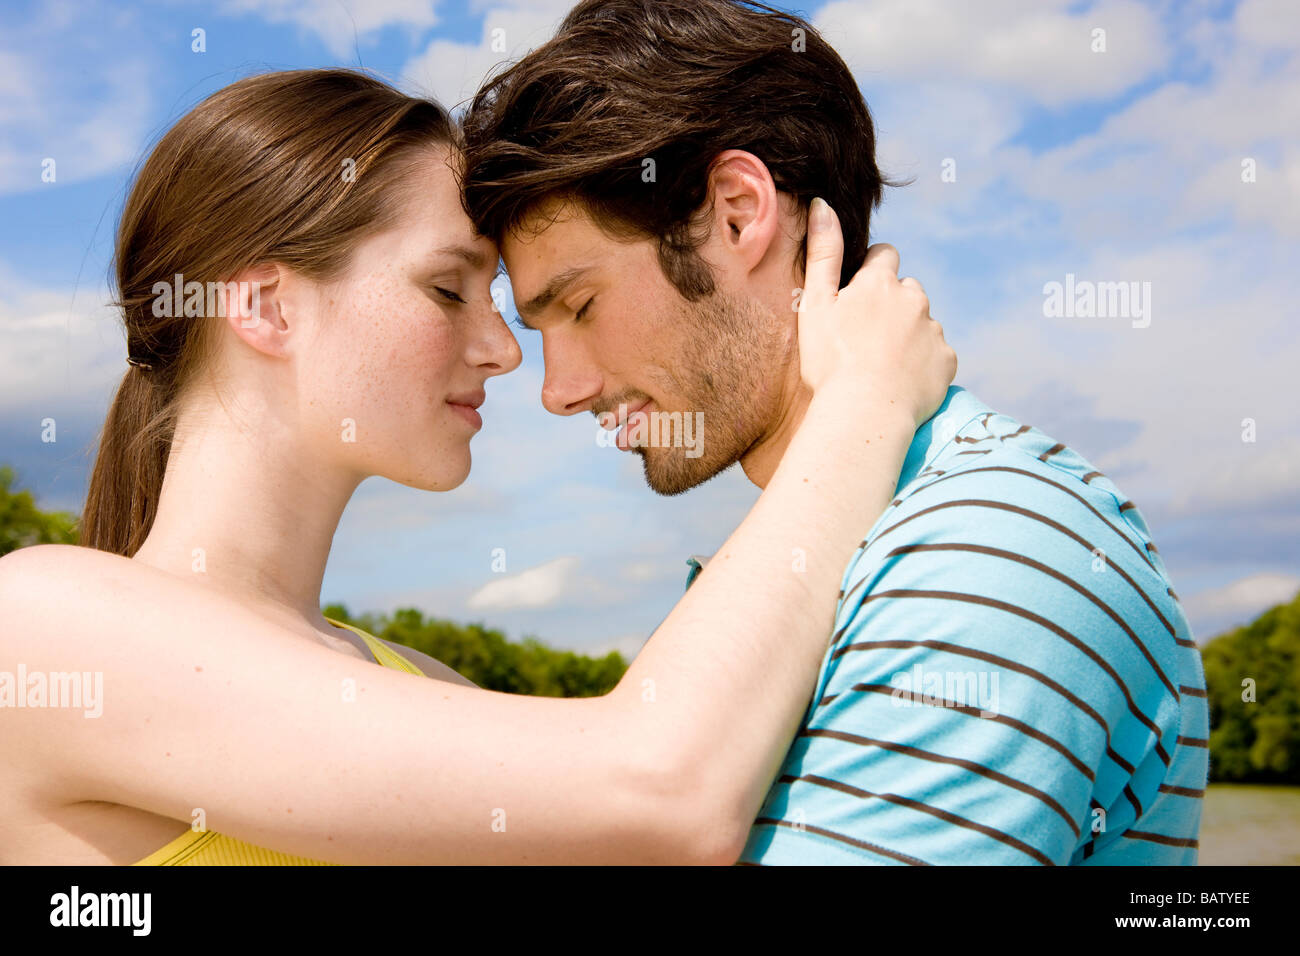 portrait of young couple in tender embrace outdoors - Stock Image